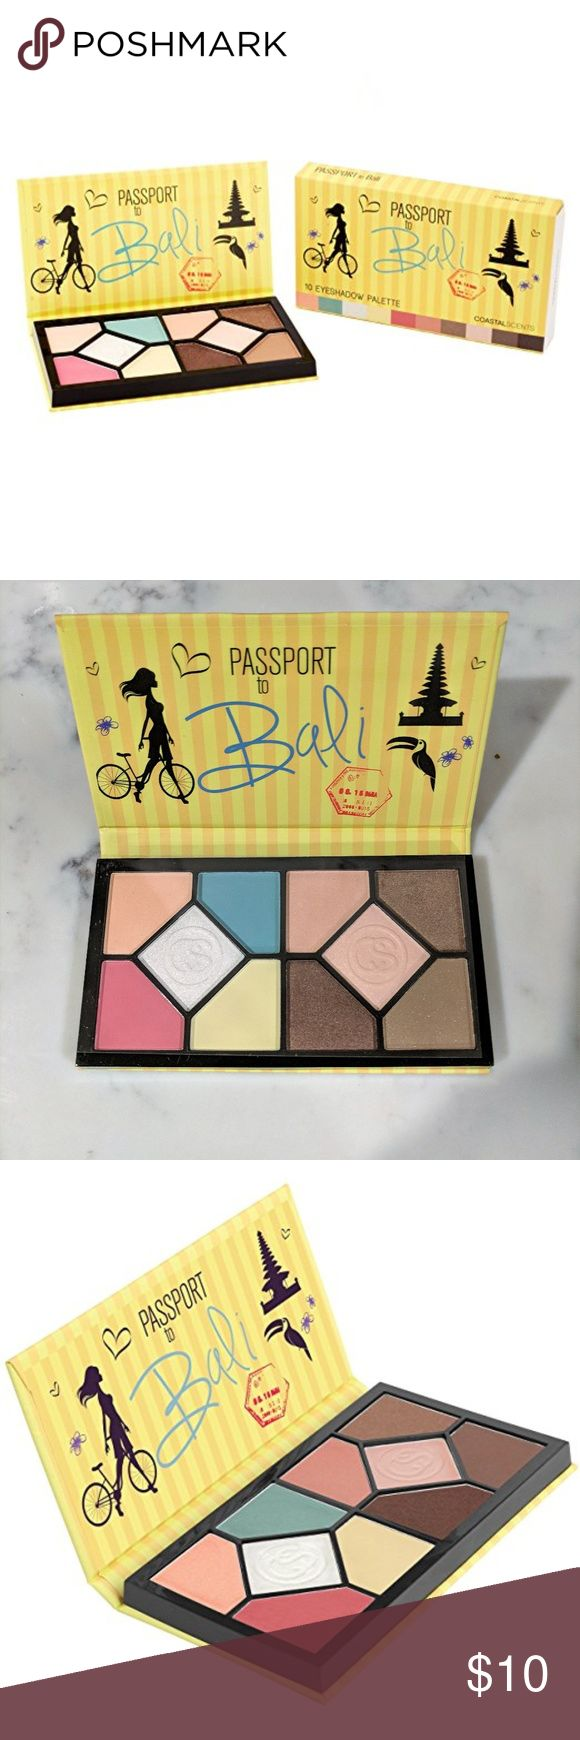 Coastal Scents Passport to Bali Eyeshadow Palette Escape to the enchanting temples, lush vegetation, and rich culture of this exotic island destination.  10 customizable eyeshadow colors  Convenient and portable palette  Includes beautiful matte and shimmer shadows Coastal Scents Makeup Eyeshadow